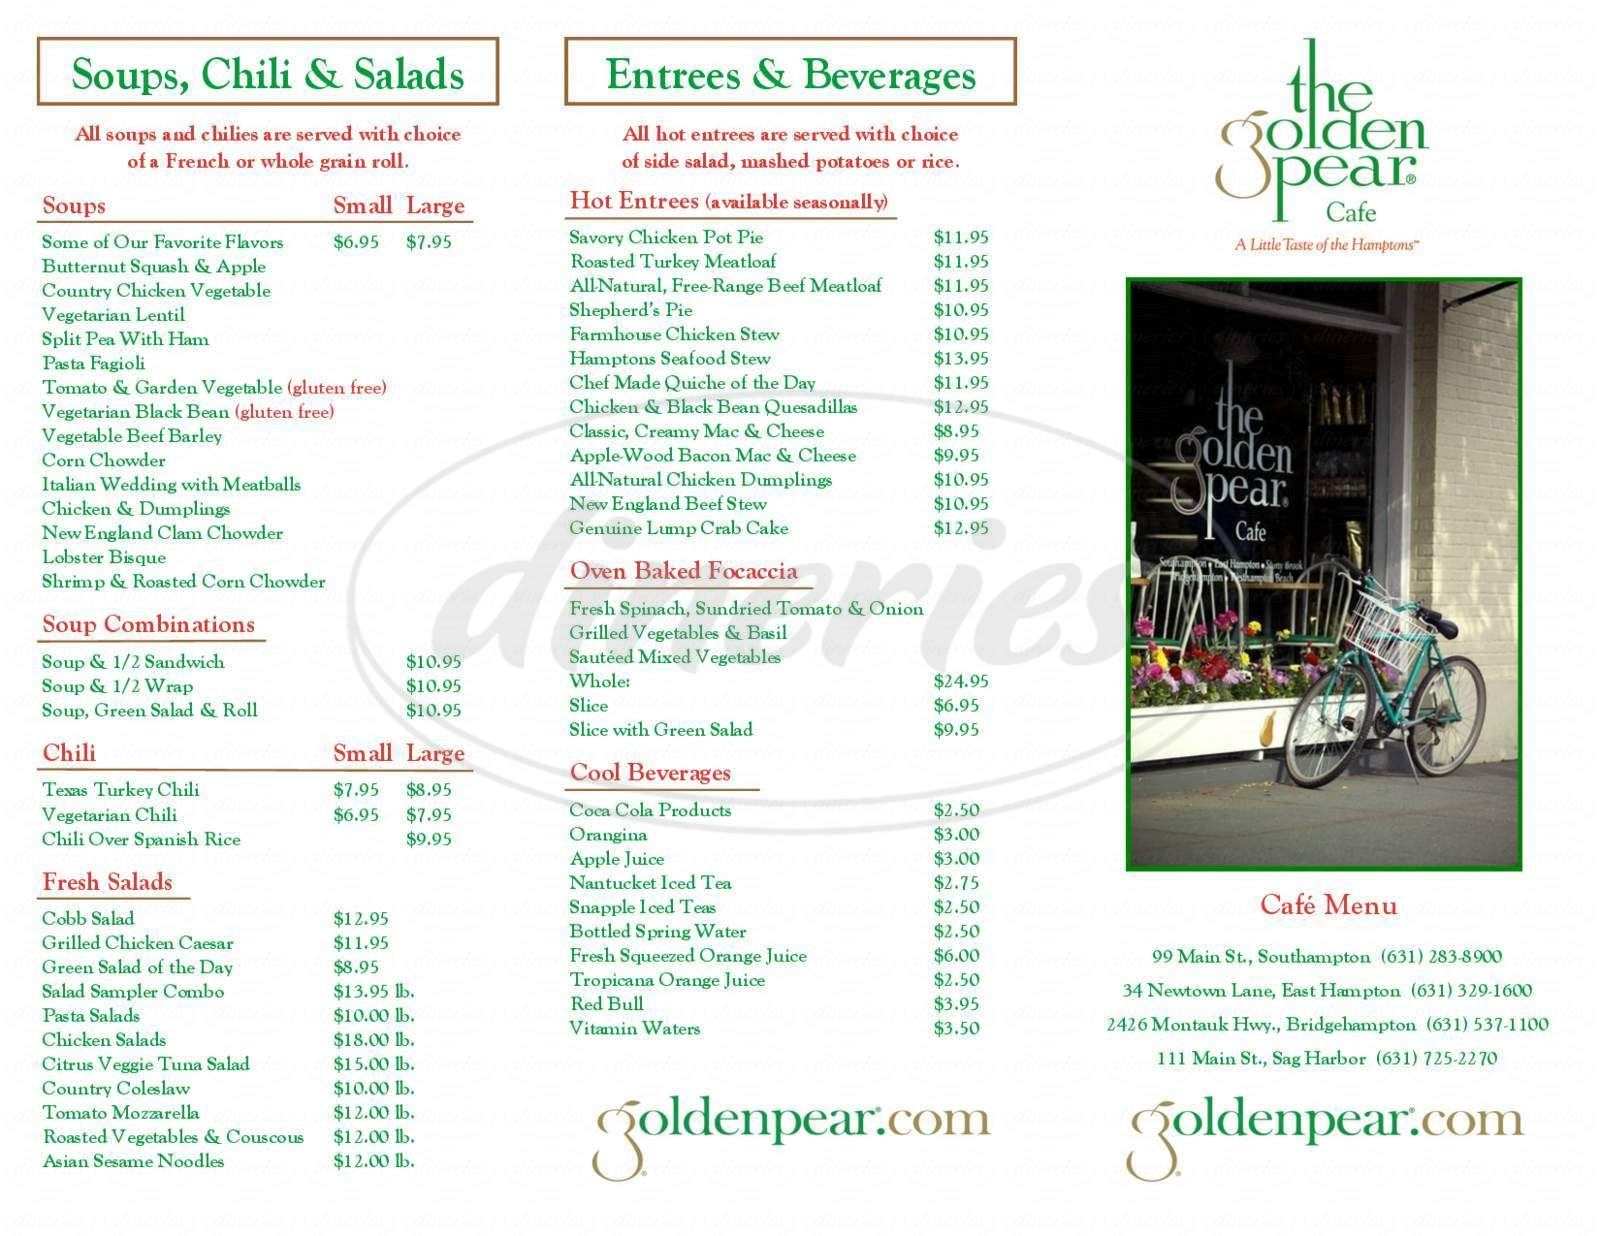 menu for The Golden Pear Cafe